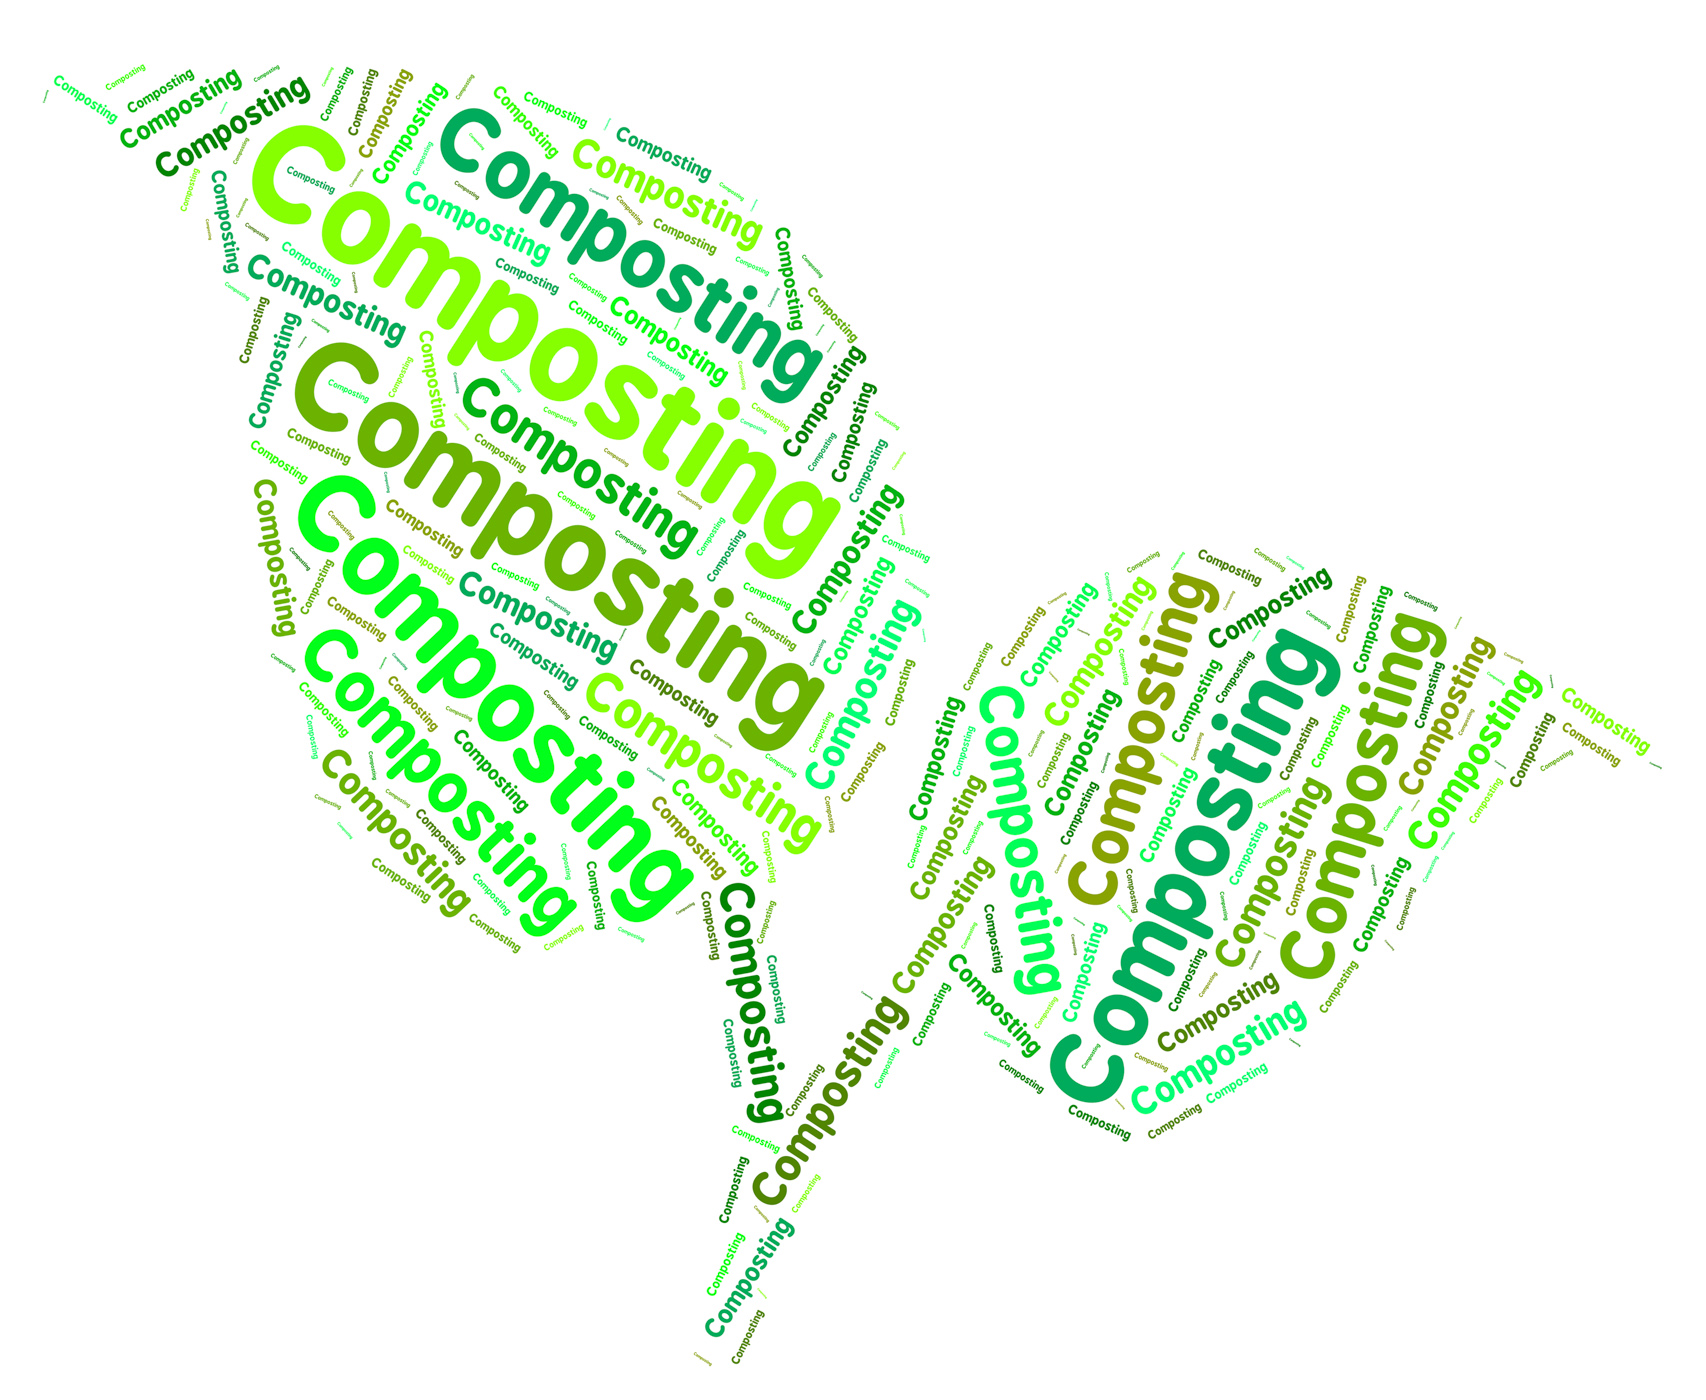 Composting word shows flower garden and composted photo